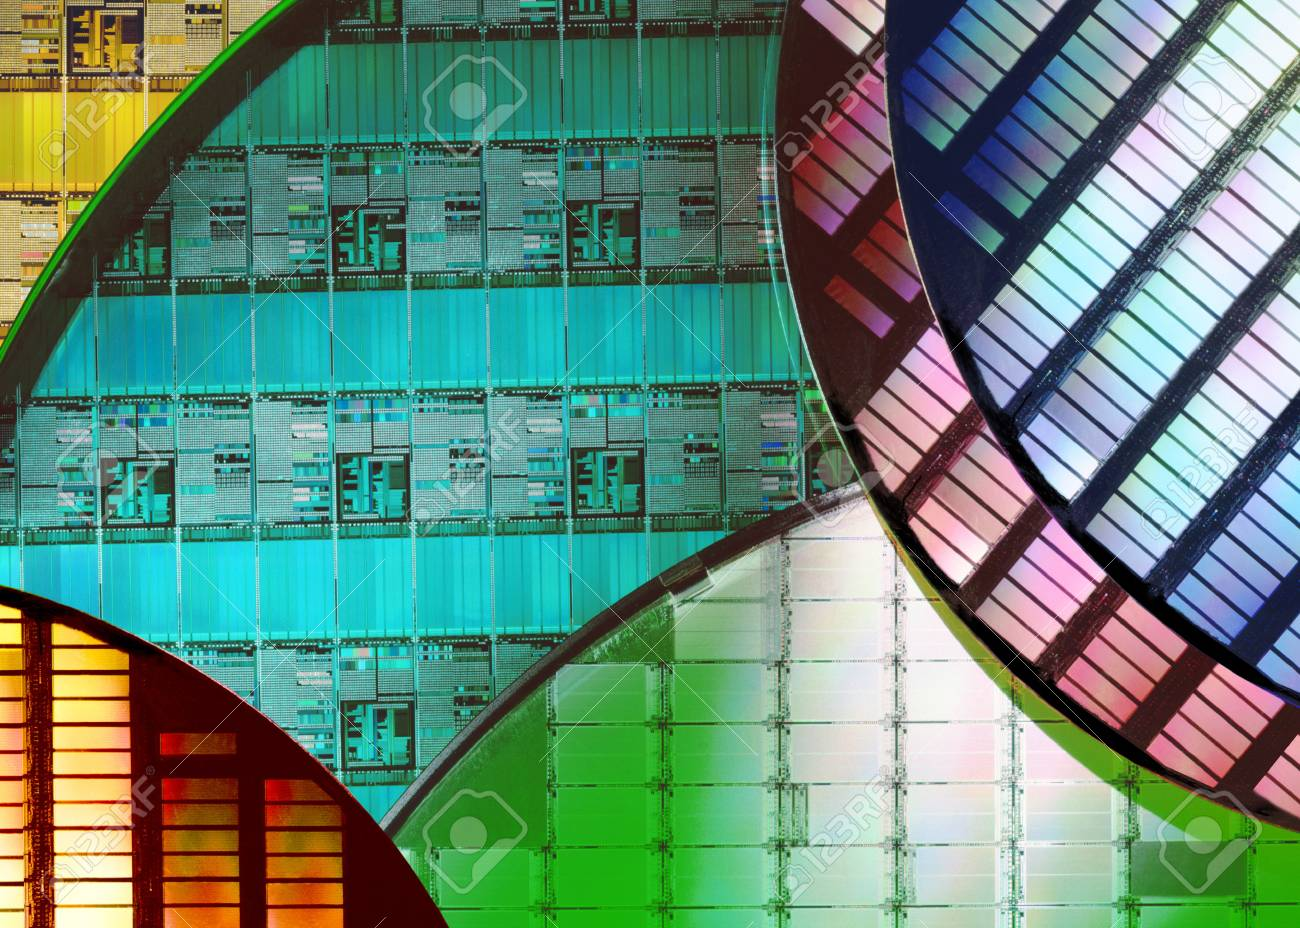 Silicon Wafers And Microcircuits A Wafer Is Thin Slice Of Where Integrated Circuits Are Used Semiconductor Material Such